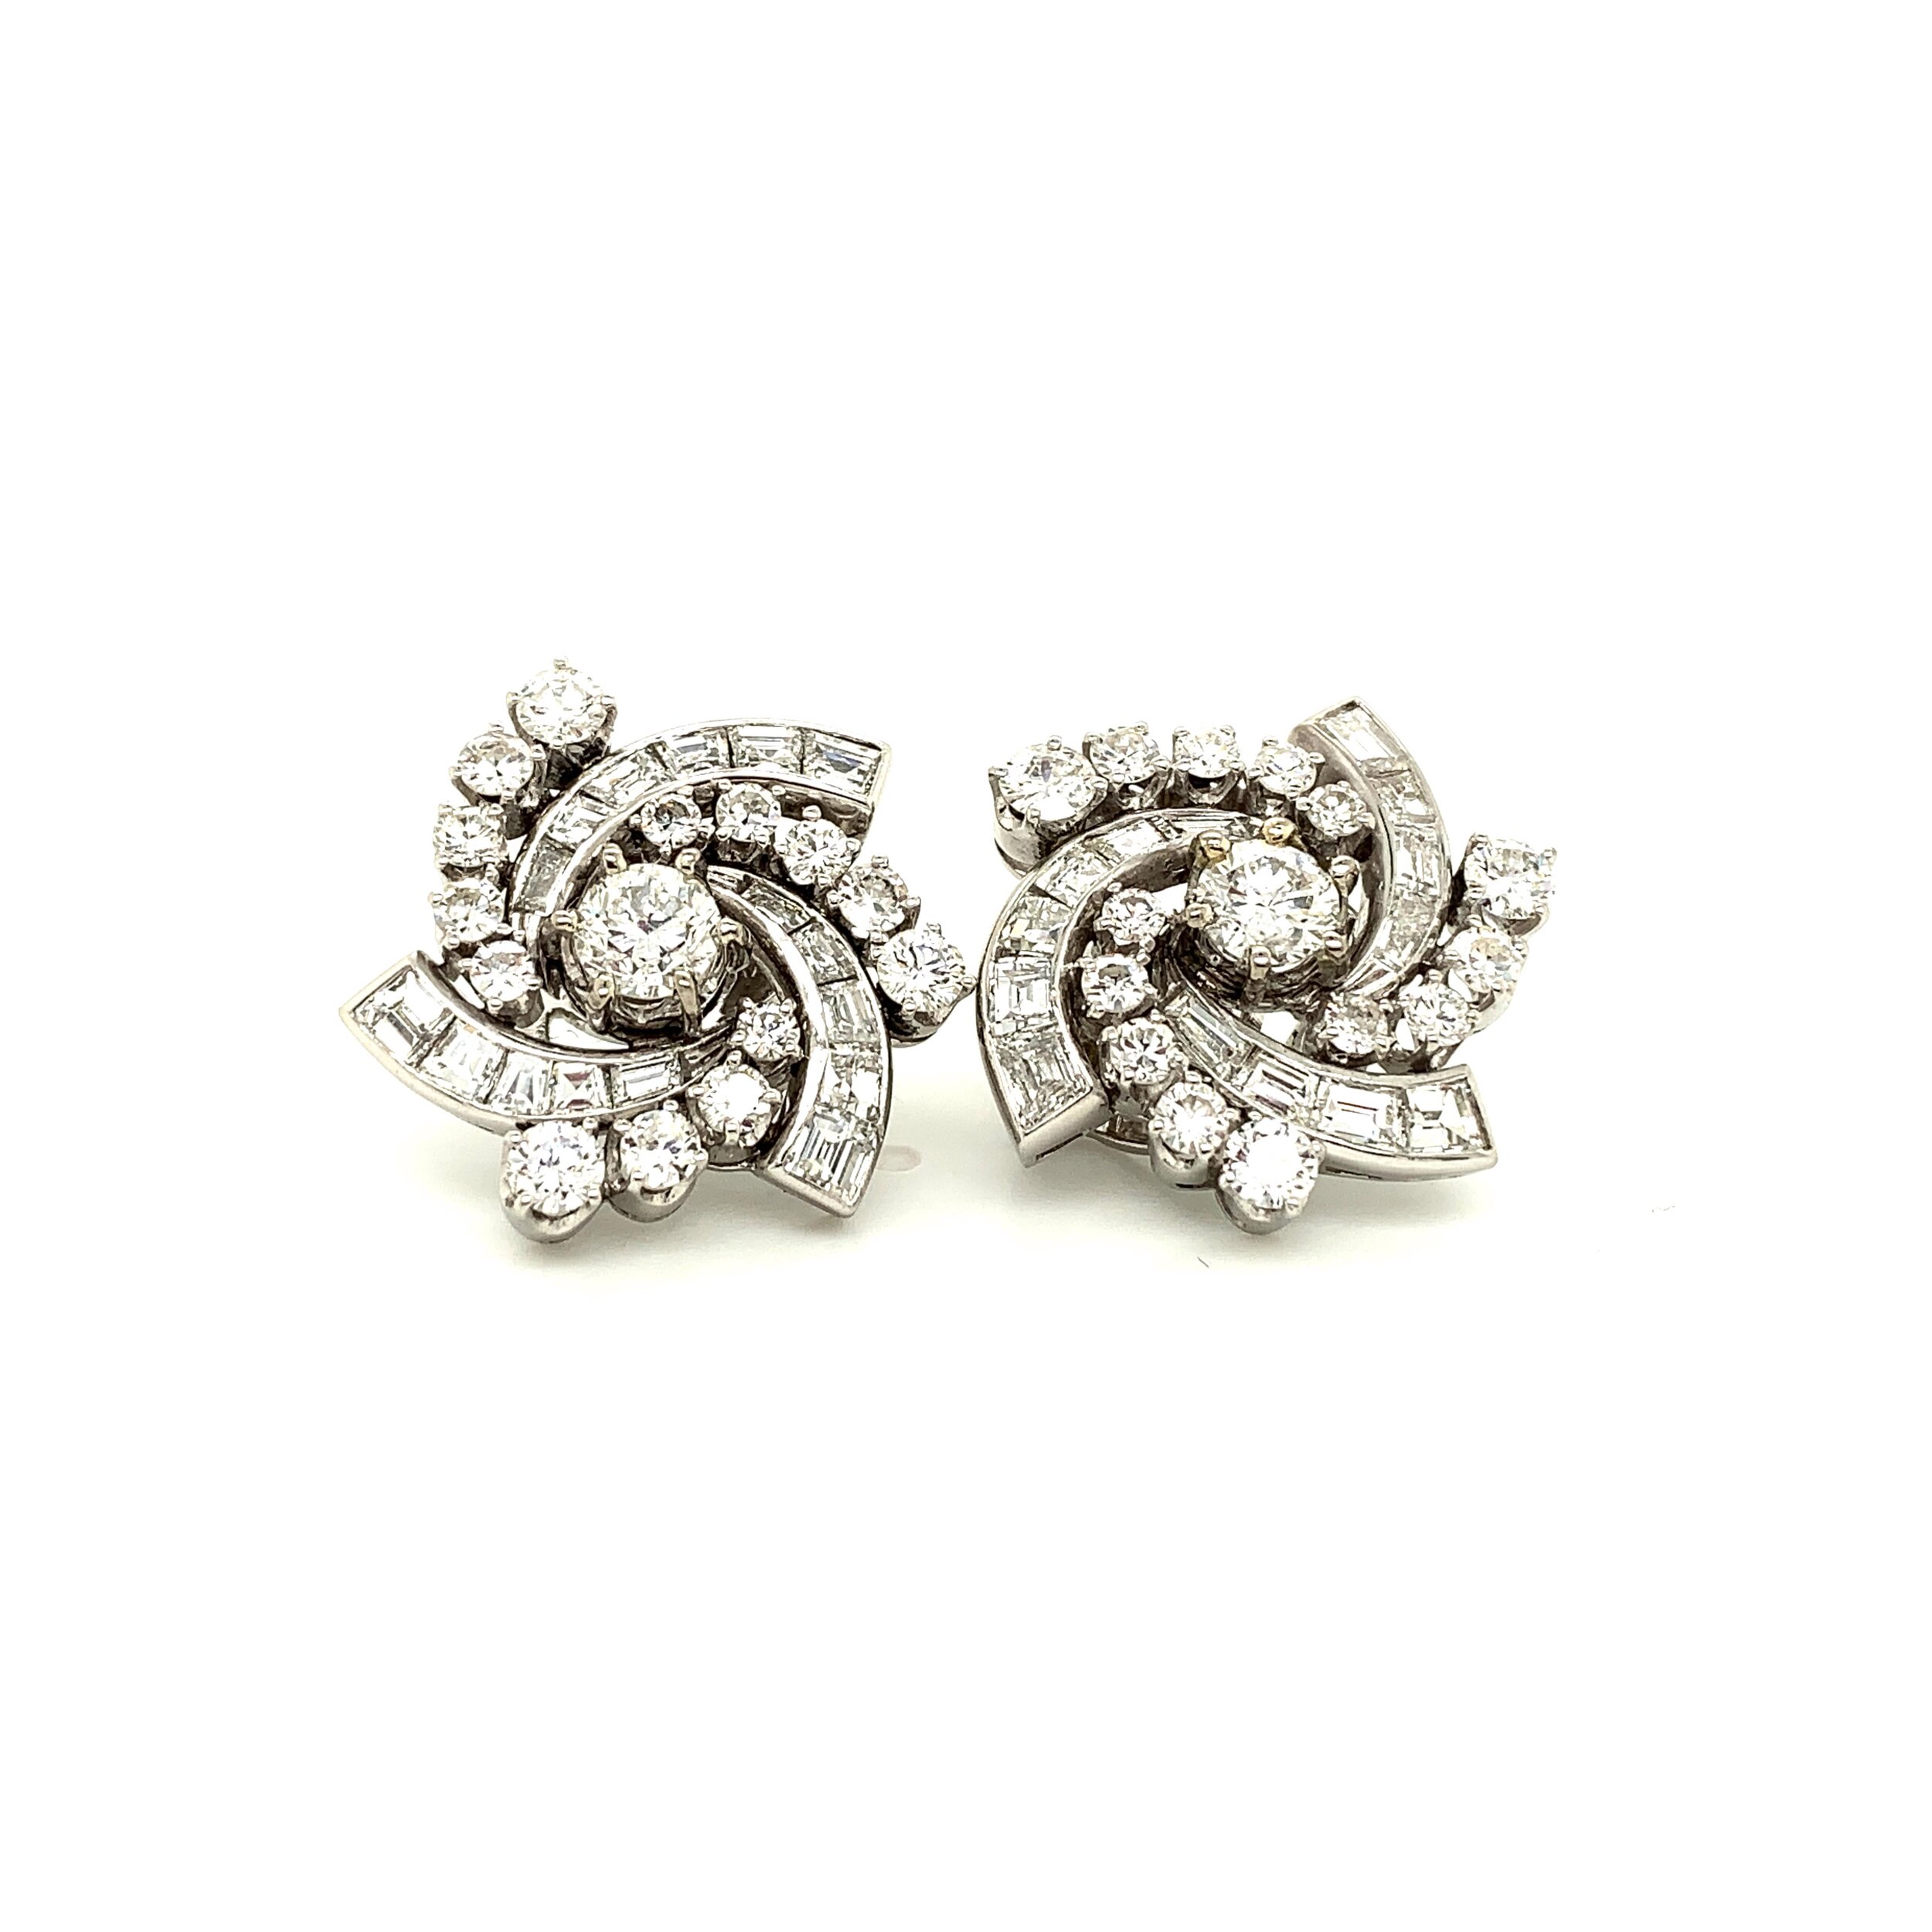 """1.03ct Old Mine Cut Diamond """"Pinwheel"""" Earrings with Baguette and Round Brilliant Diamonds, TCW 4.5cts   Est. US$ 5,500-7,000"""